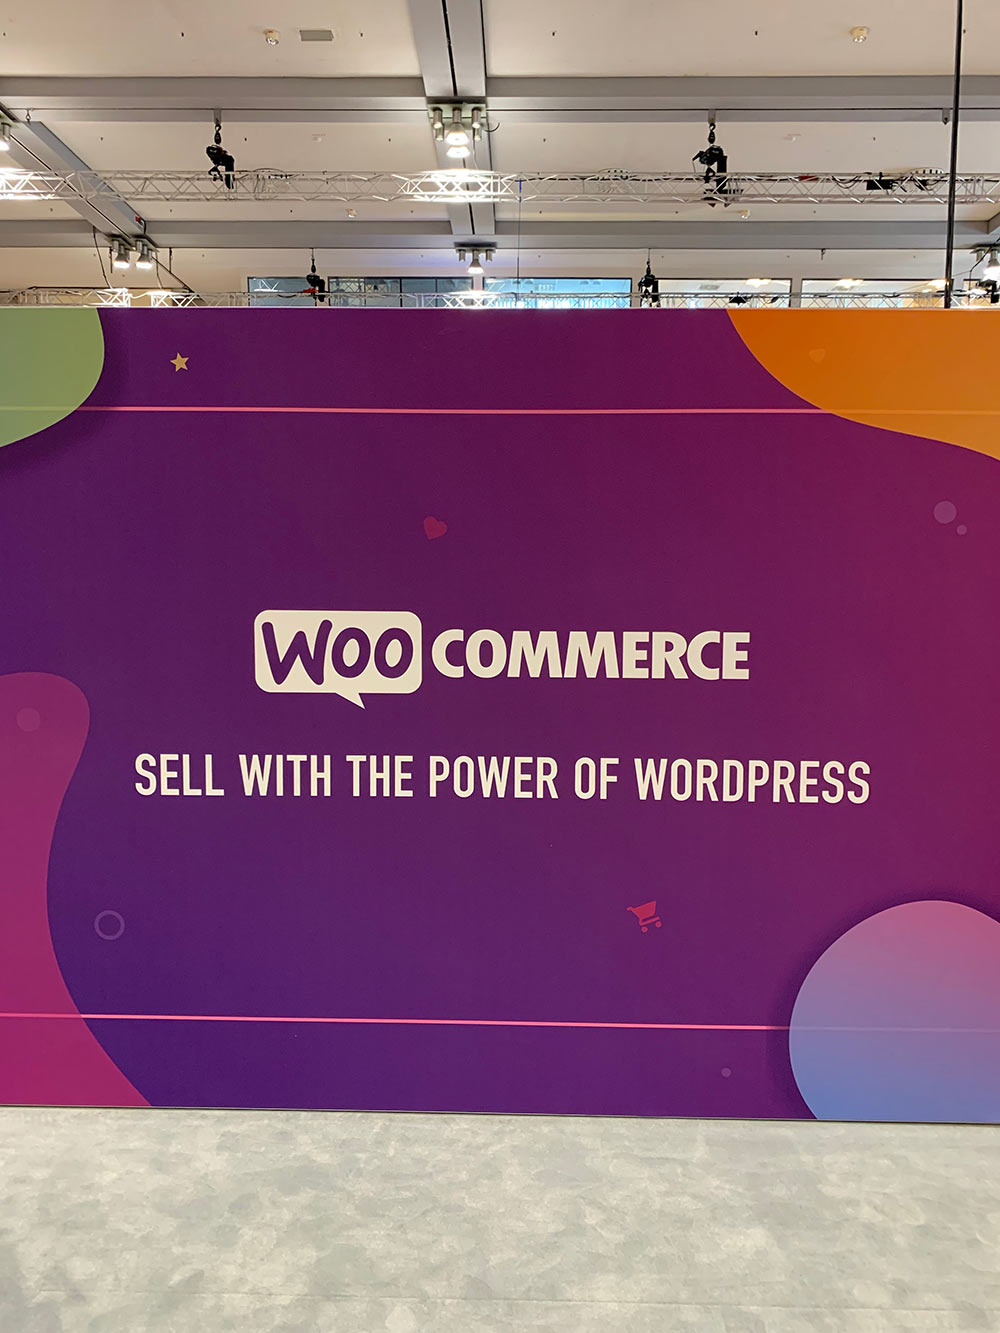 wceu 2019 day4 02 - WordCamp Europe 2019 - WordPress Konferenz – Tag 4 meines #InfluencerReisli